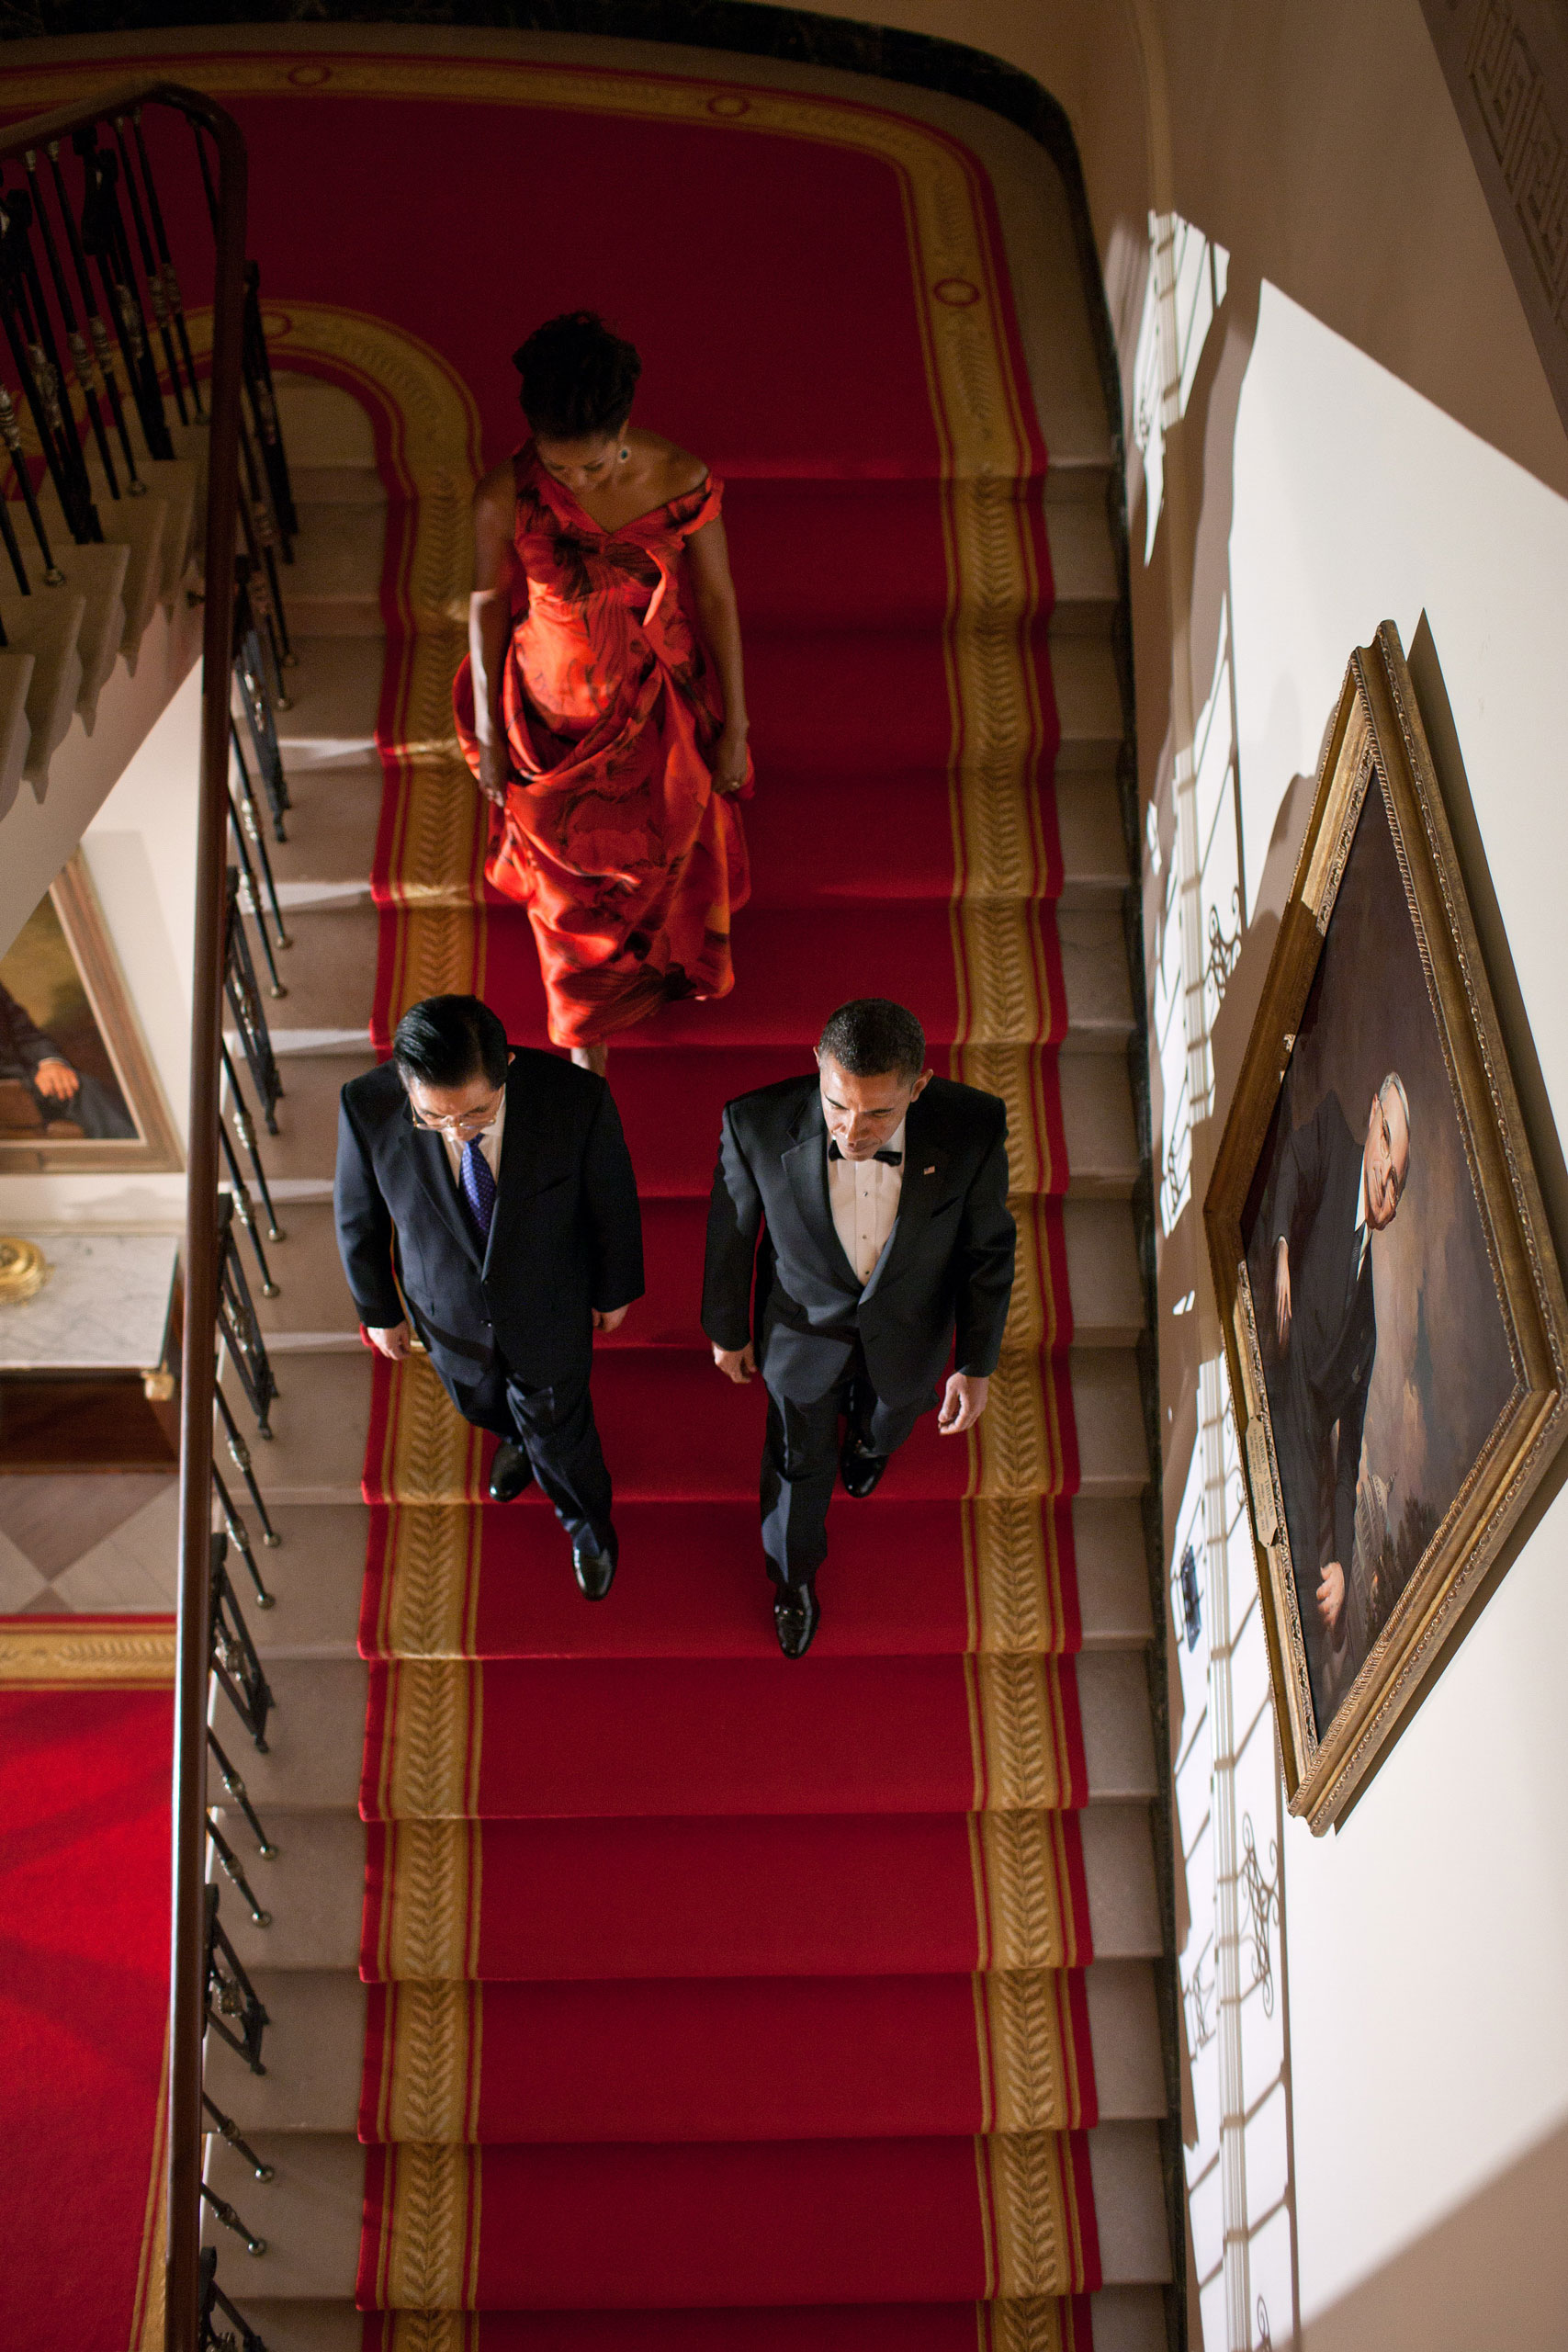 The President, the First Lady and President Hu Jintao of China descend the Grand Staircase of the White House before a formal State Dinner, Jan. 19, 2011.